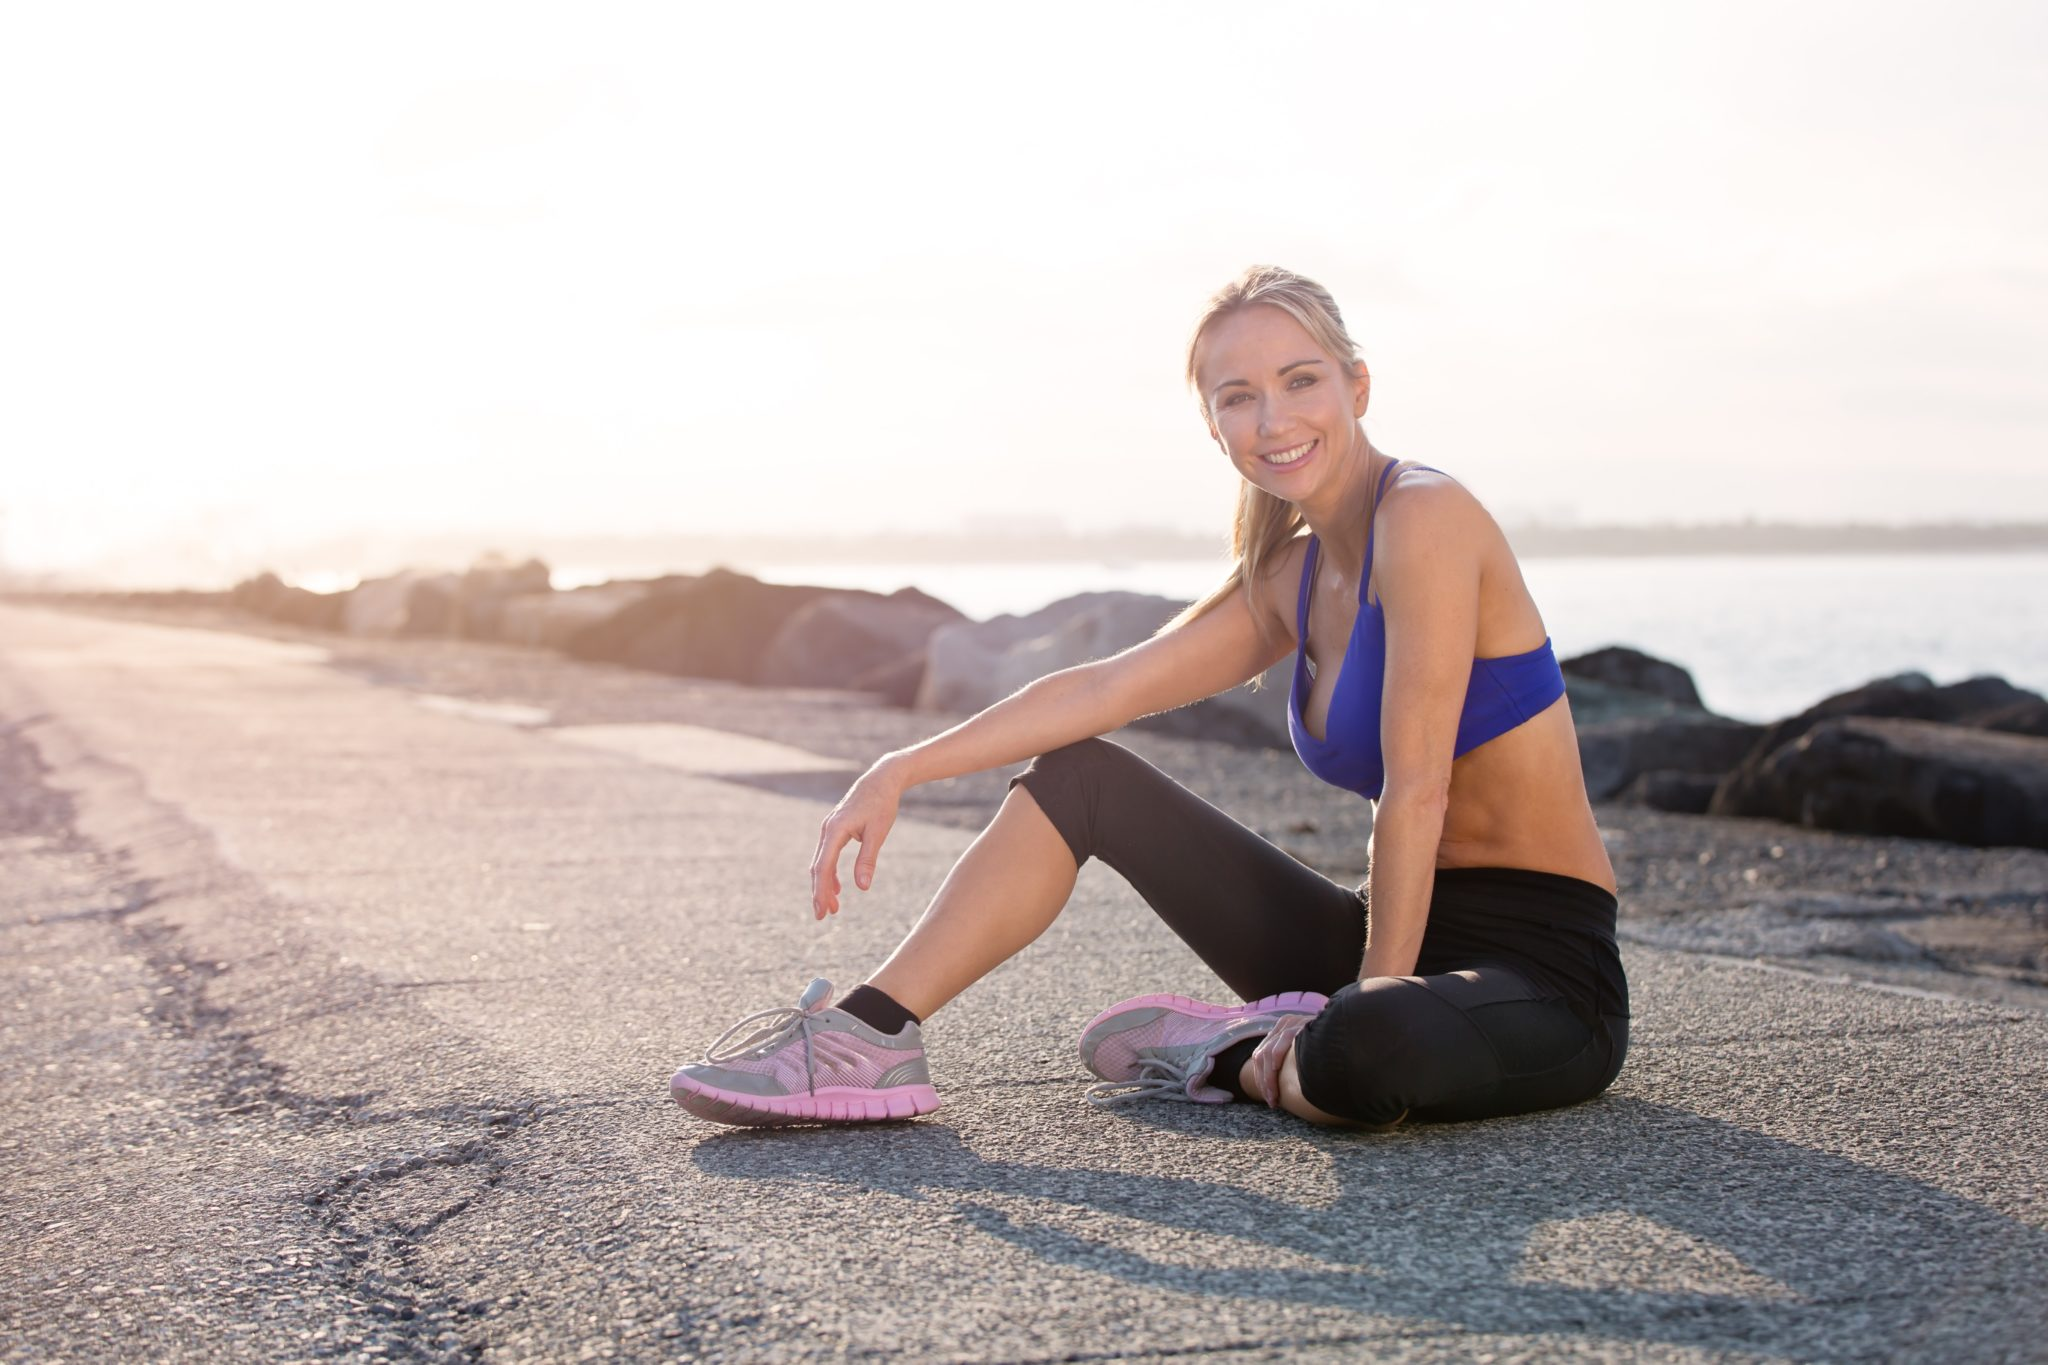 A young fit woman in workout clothes sitting down smiling